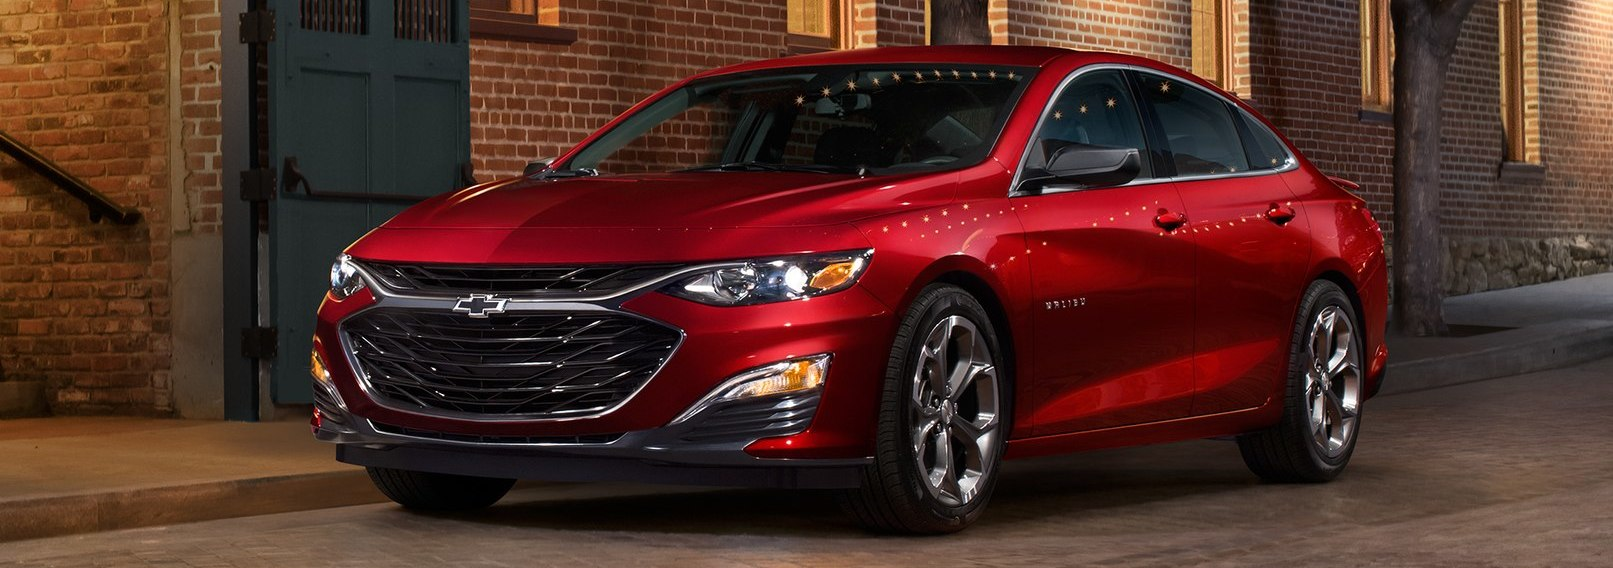 Used Chevrolet Malibu for Sale near Washington, DC